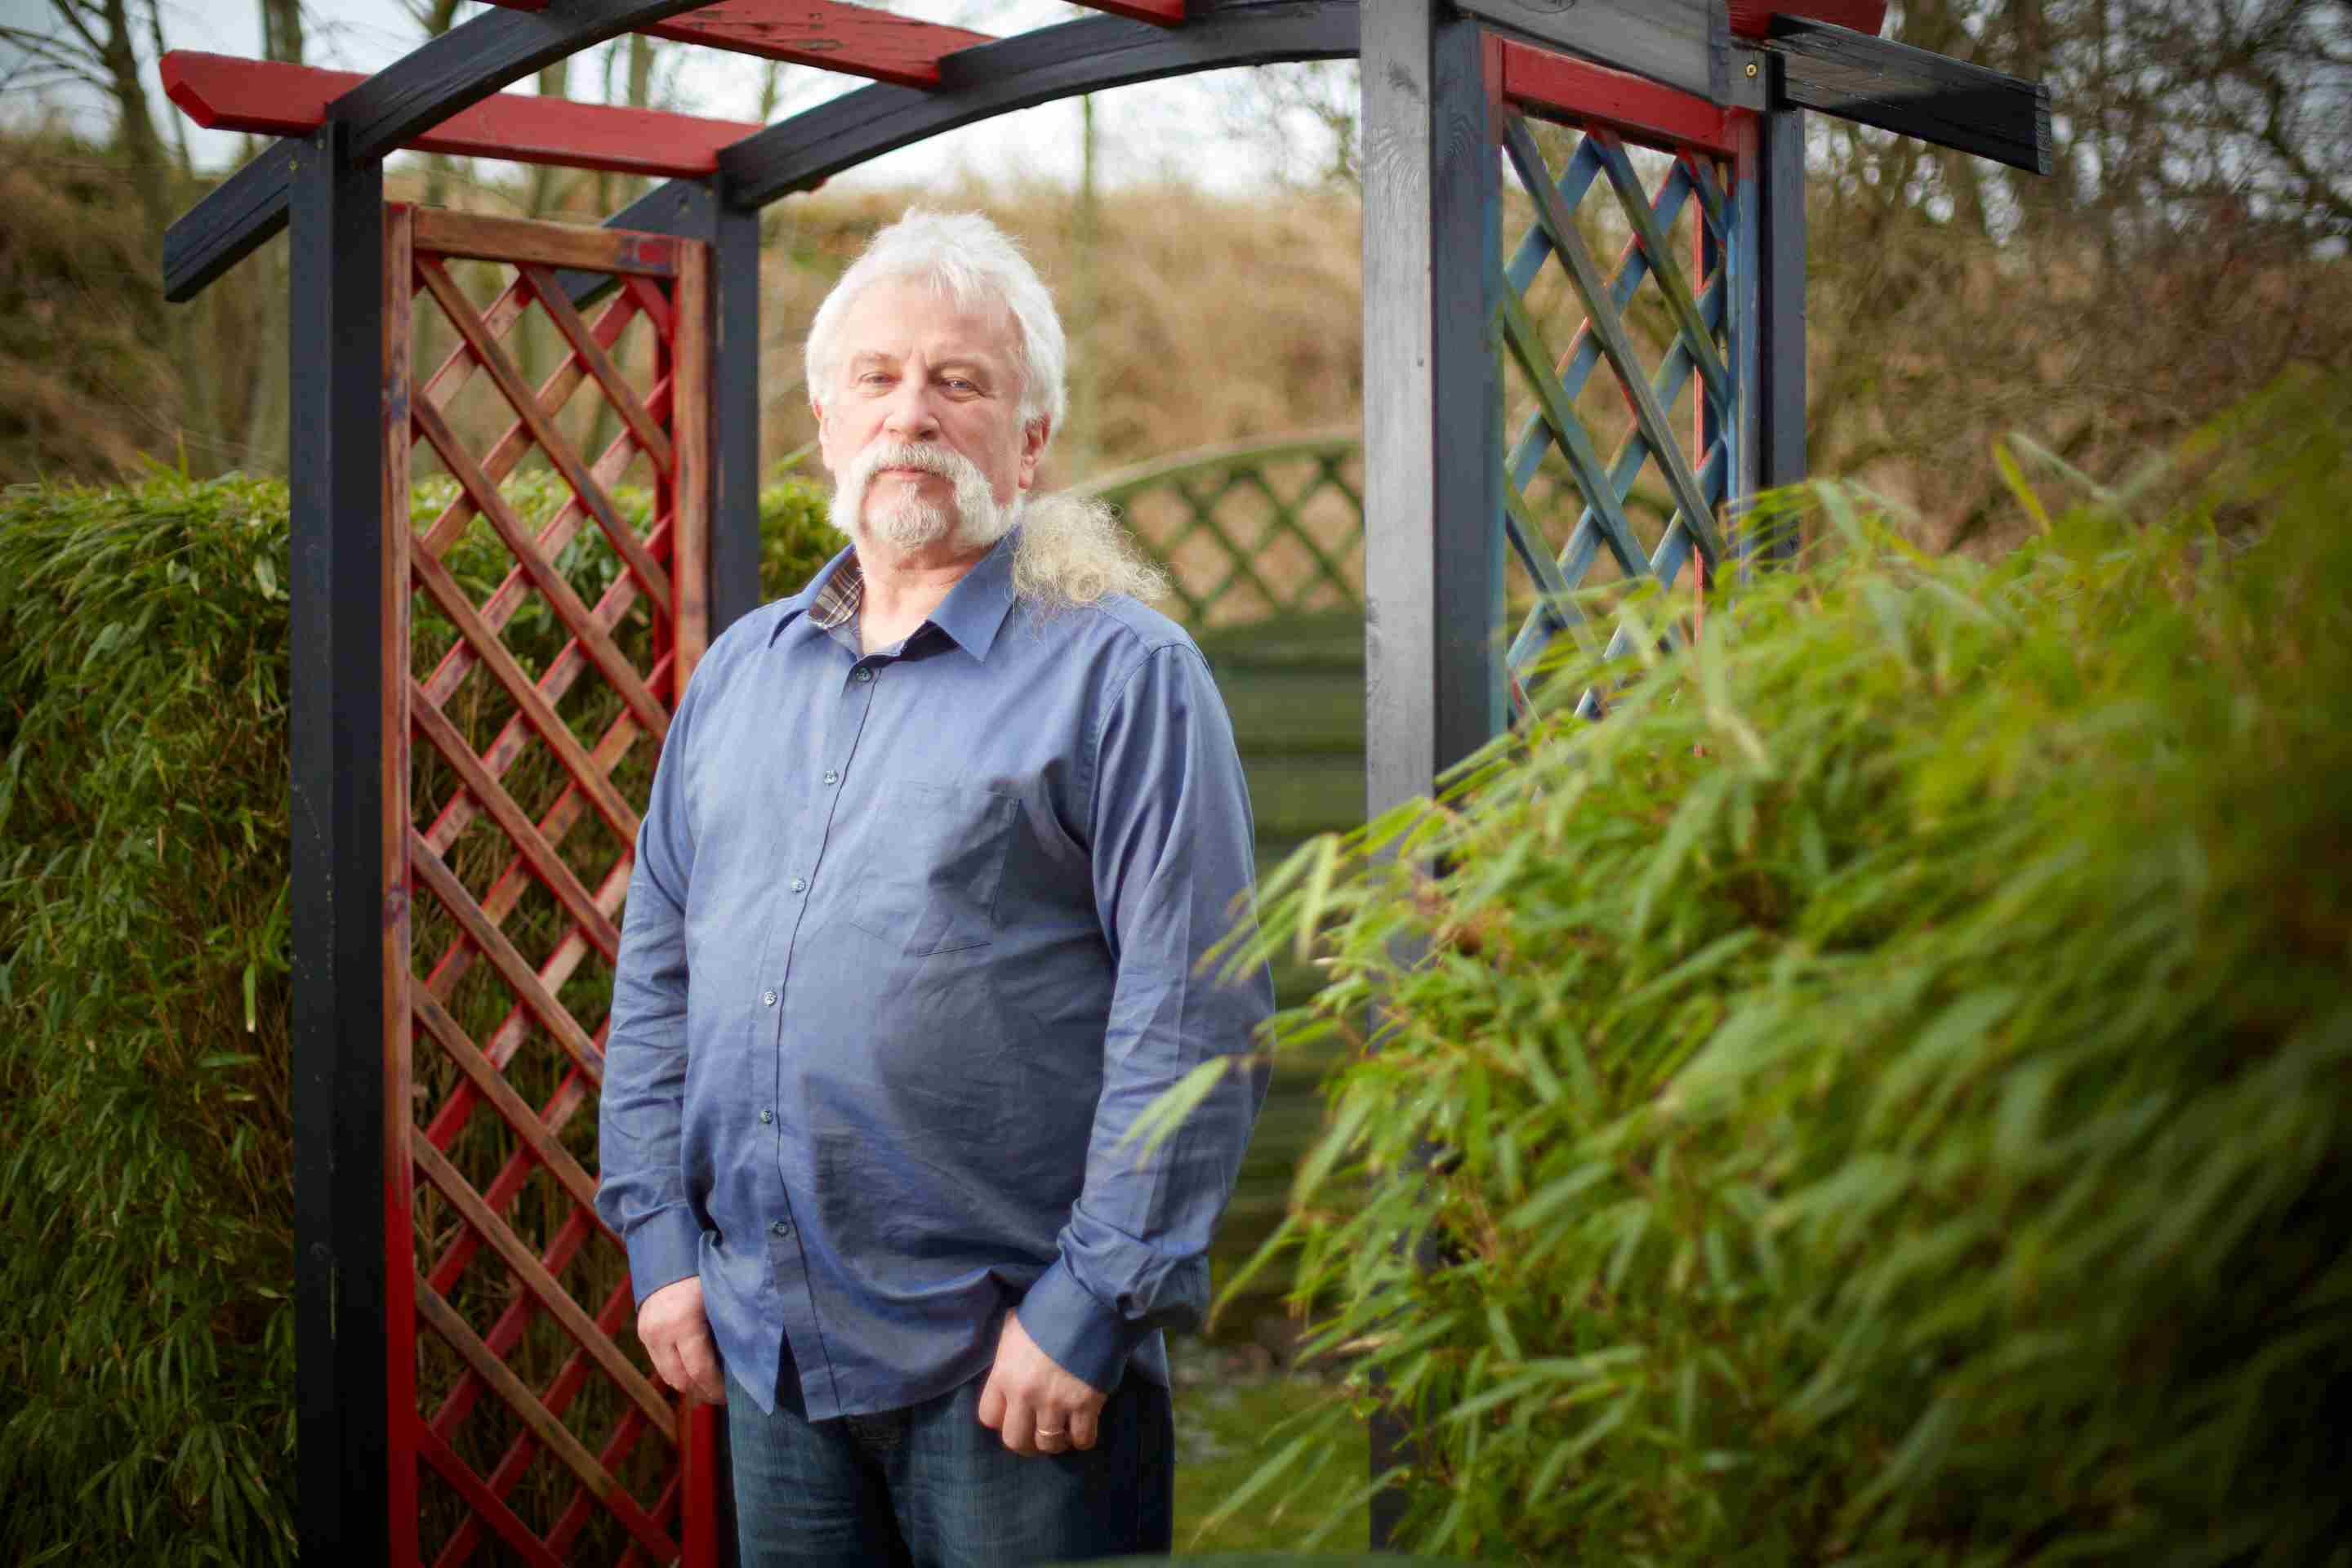 A man in a blue shirt with white hair stands in a garden archway, hands in pockets